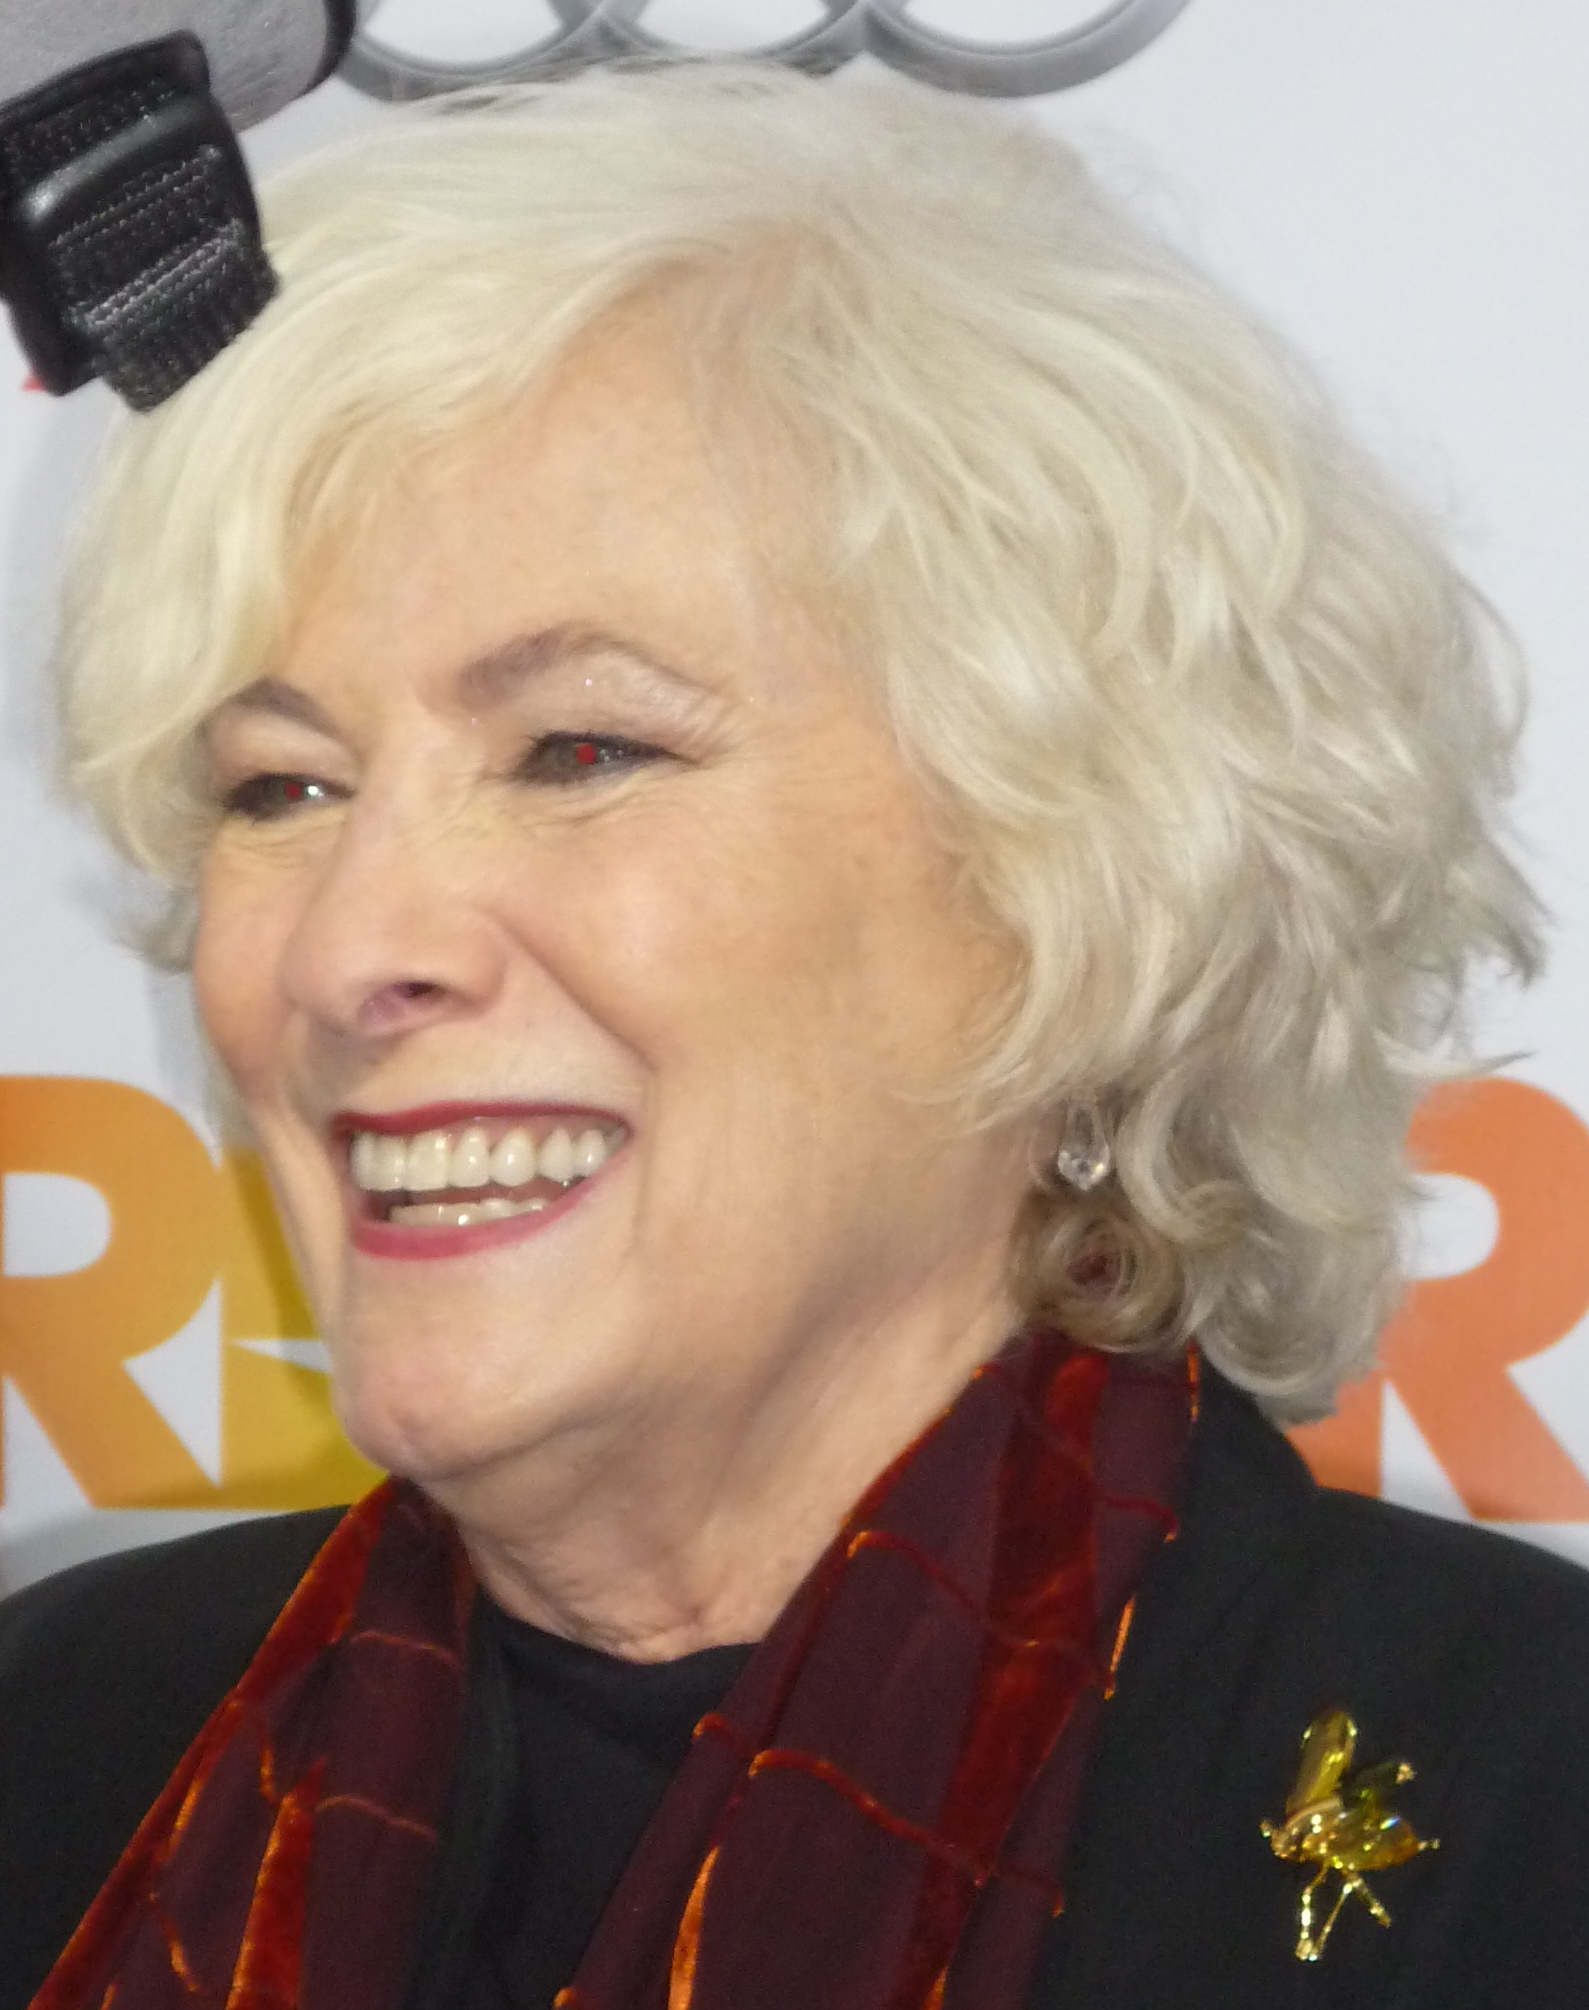 The 71-year old daughter of father Ernest Lynn Buckley and mother Betty Bob Betty Buckley in 2018 photo. Betty Buckley earned a  million dollar salary - leaving the net worth at 2 million in 2018